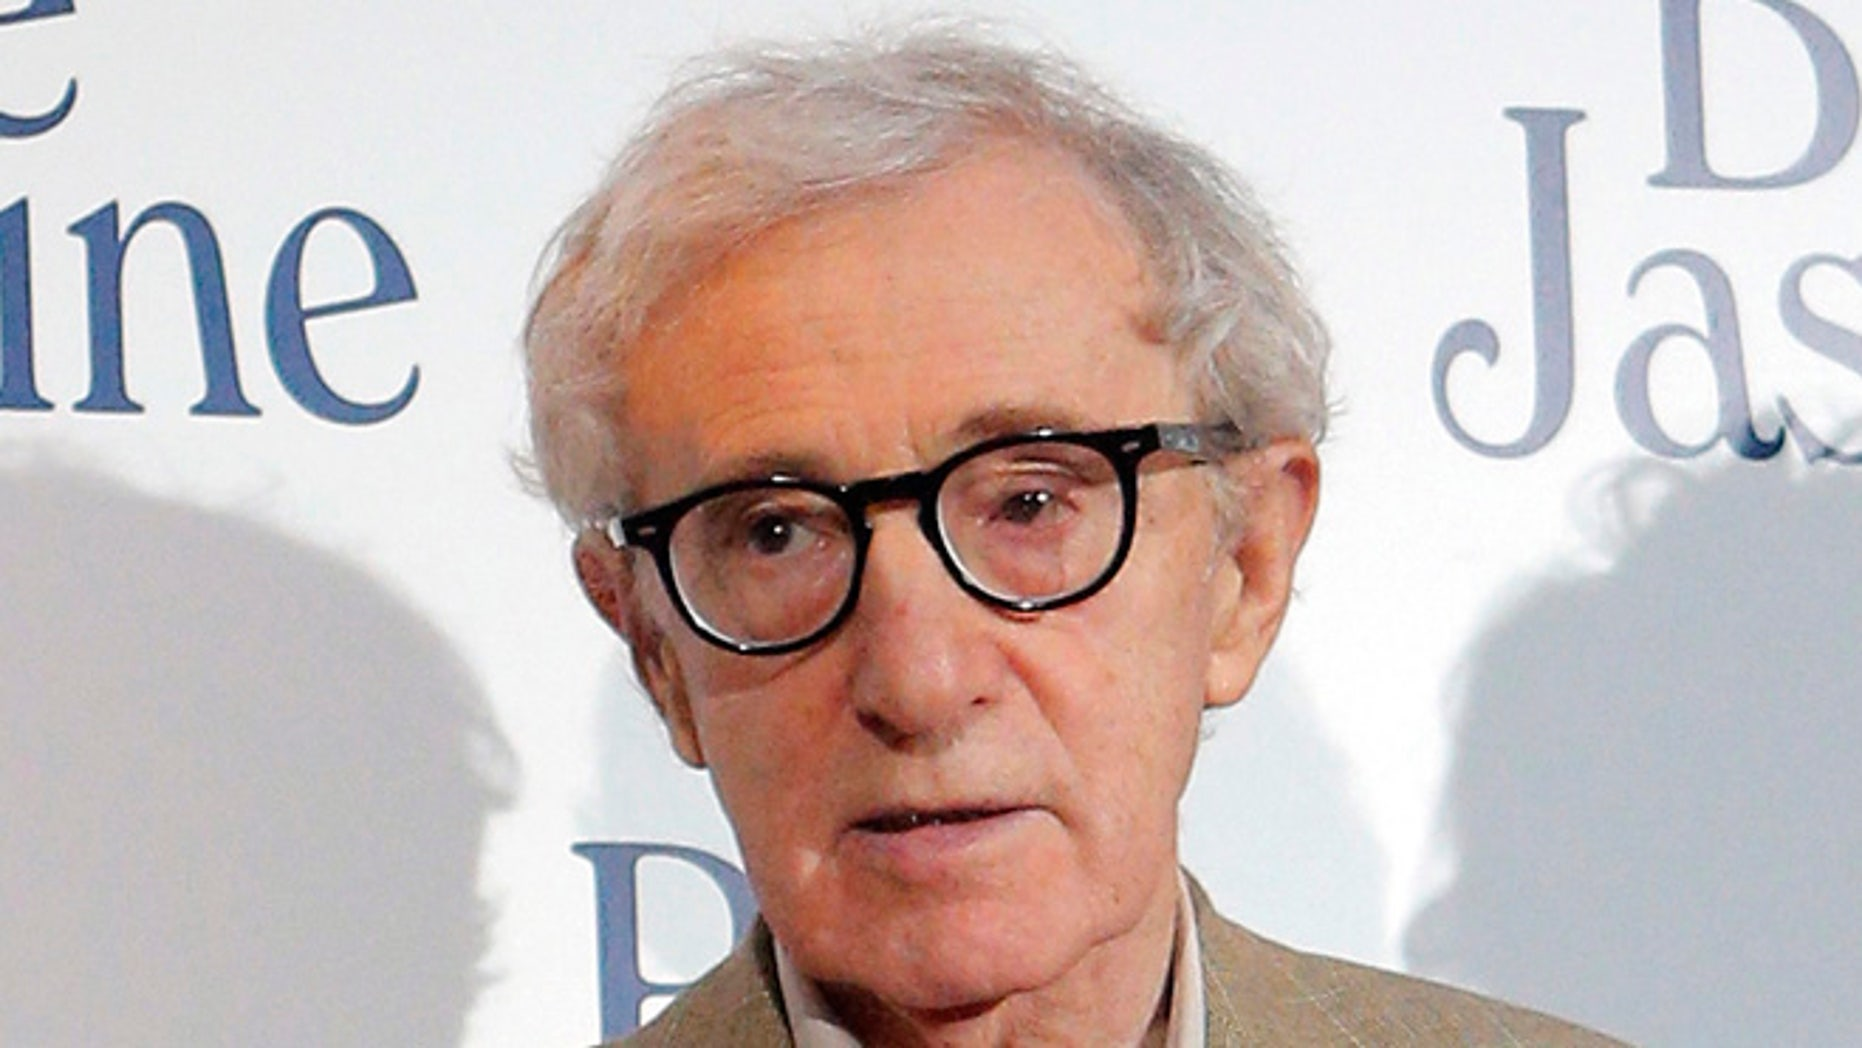 Woody Allen sues Amazon Studios in wake of renewed molestation allegations